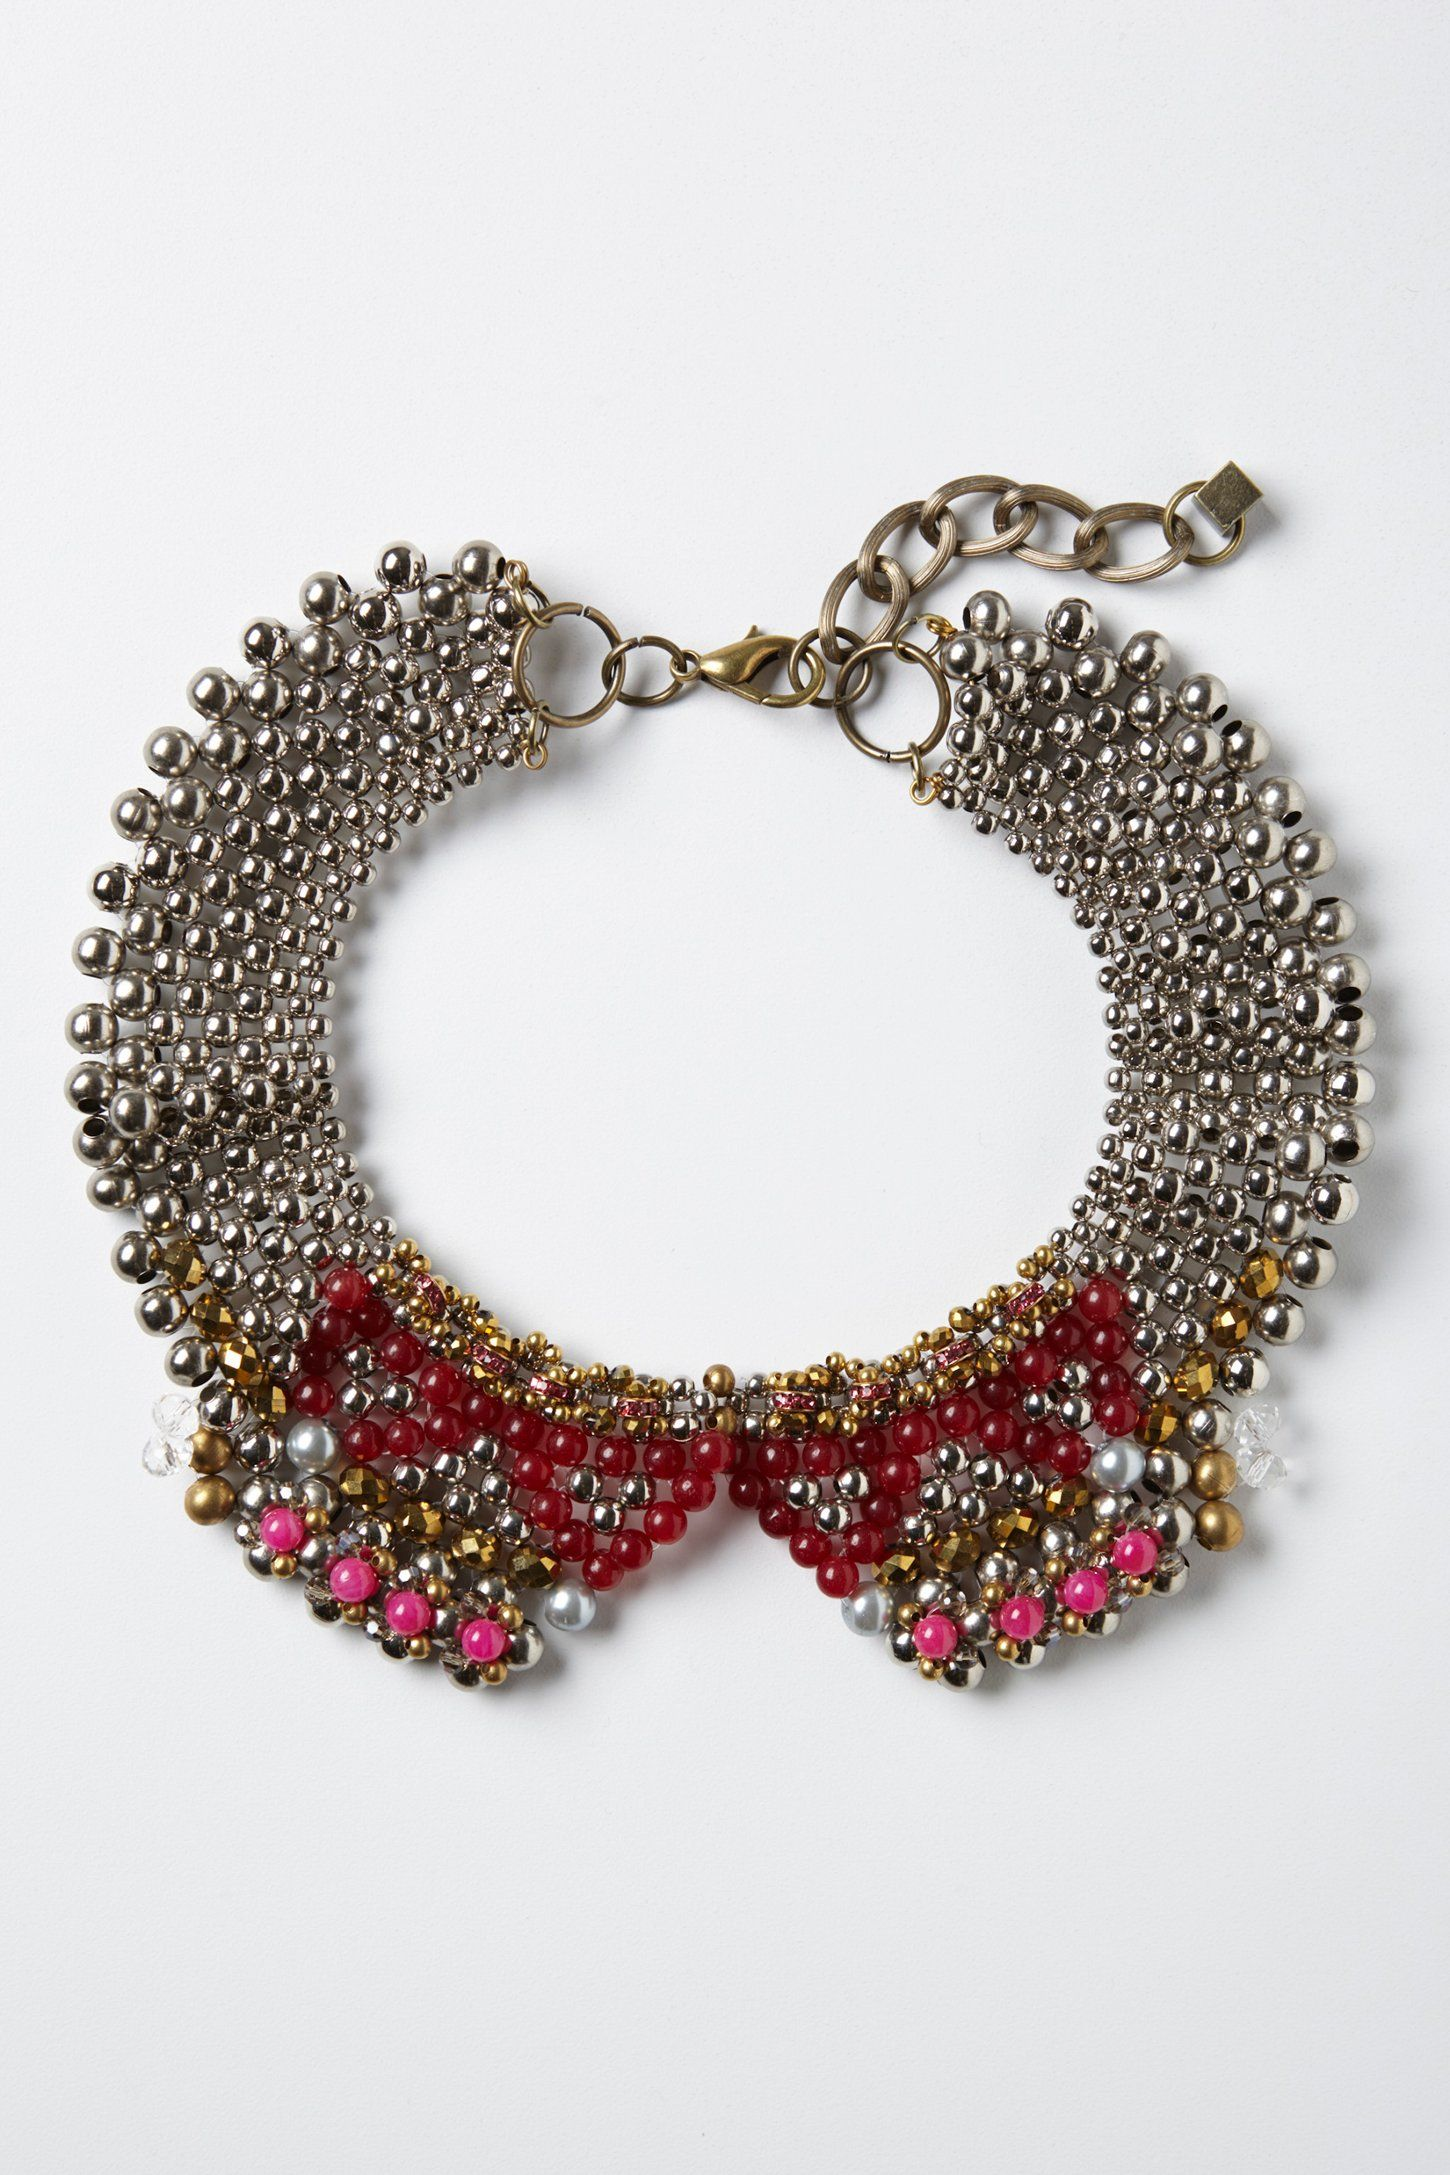 Sparked Agate Collar - Anthropologie.com